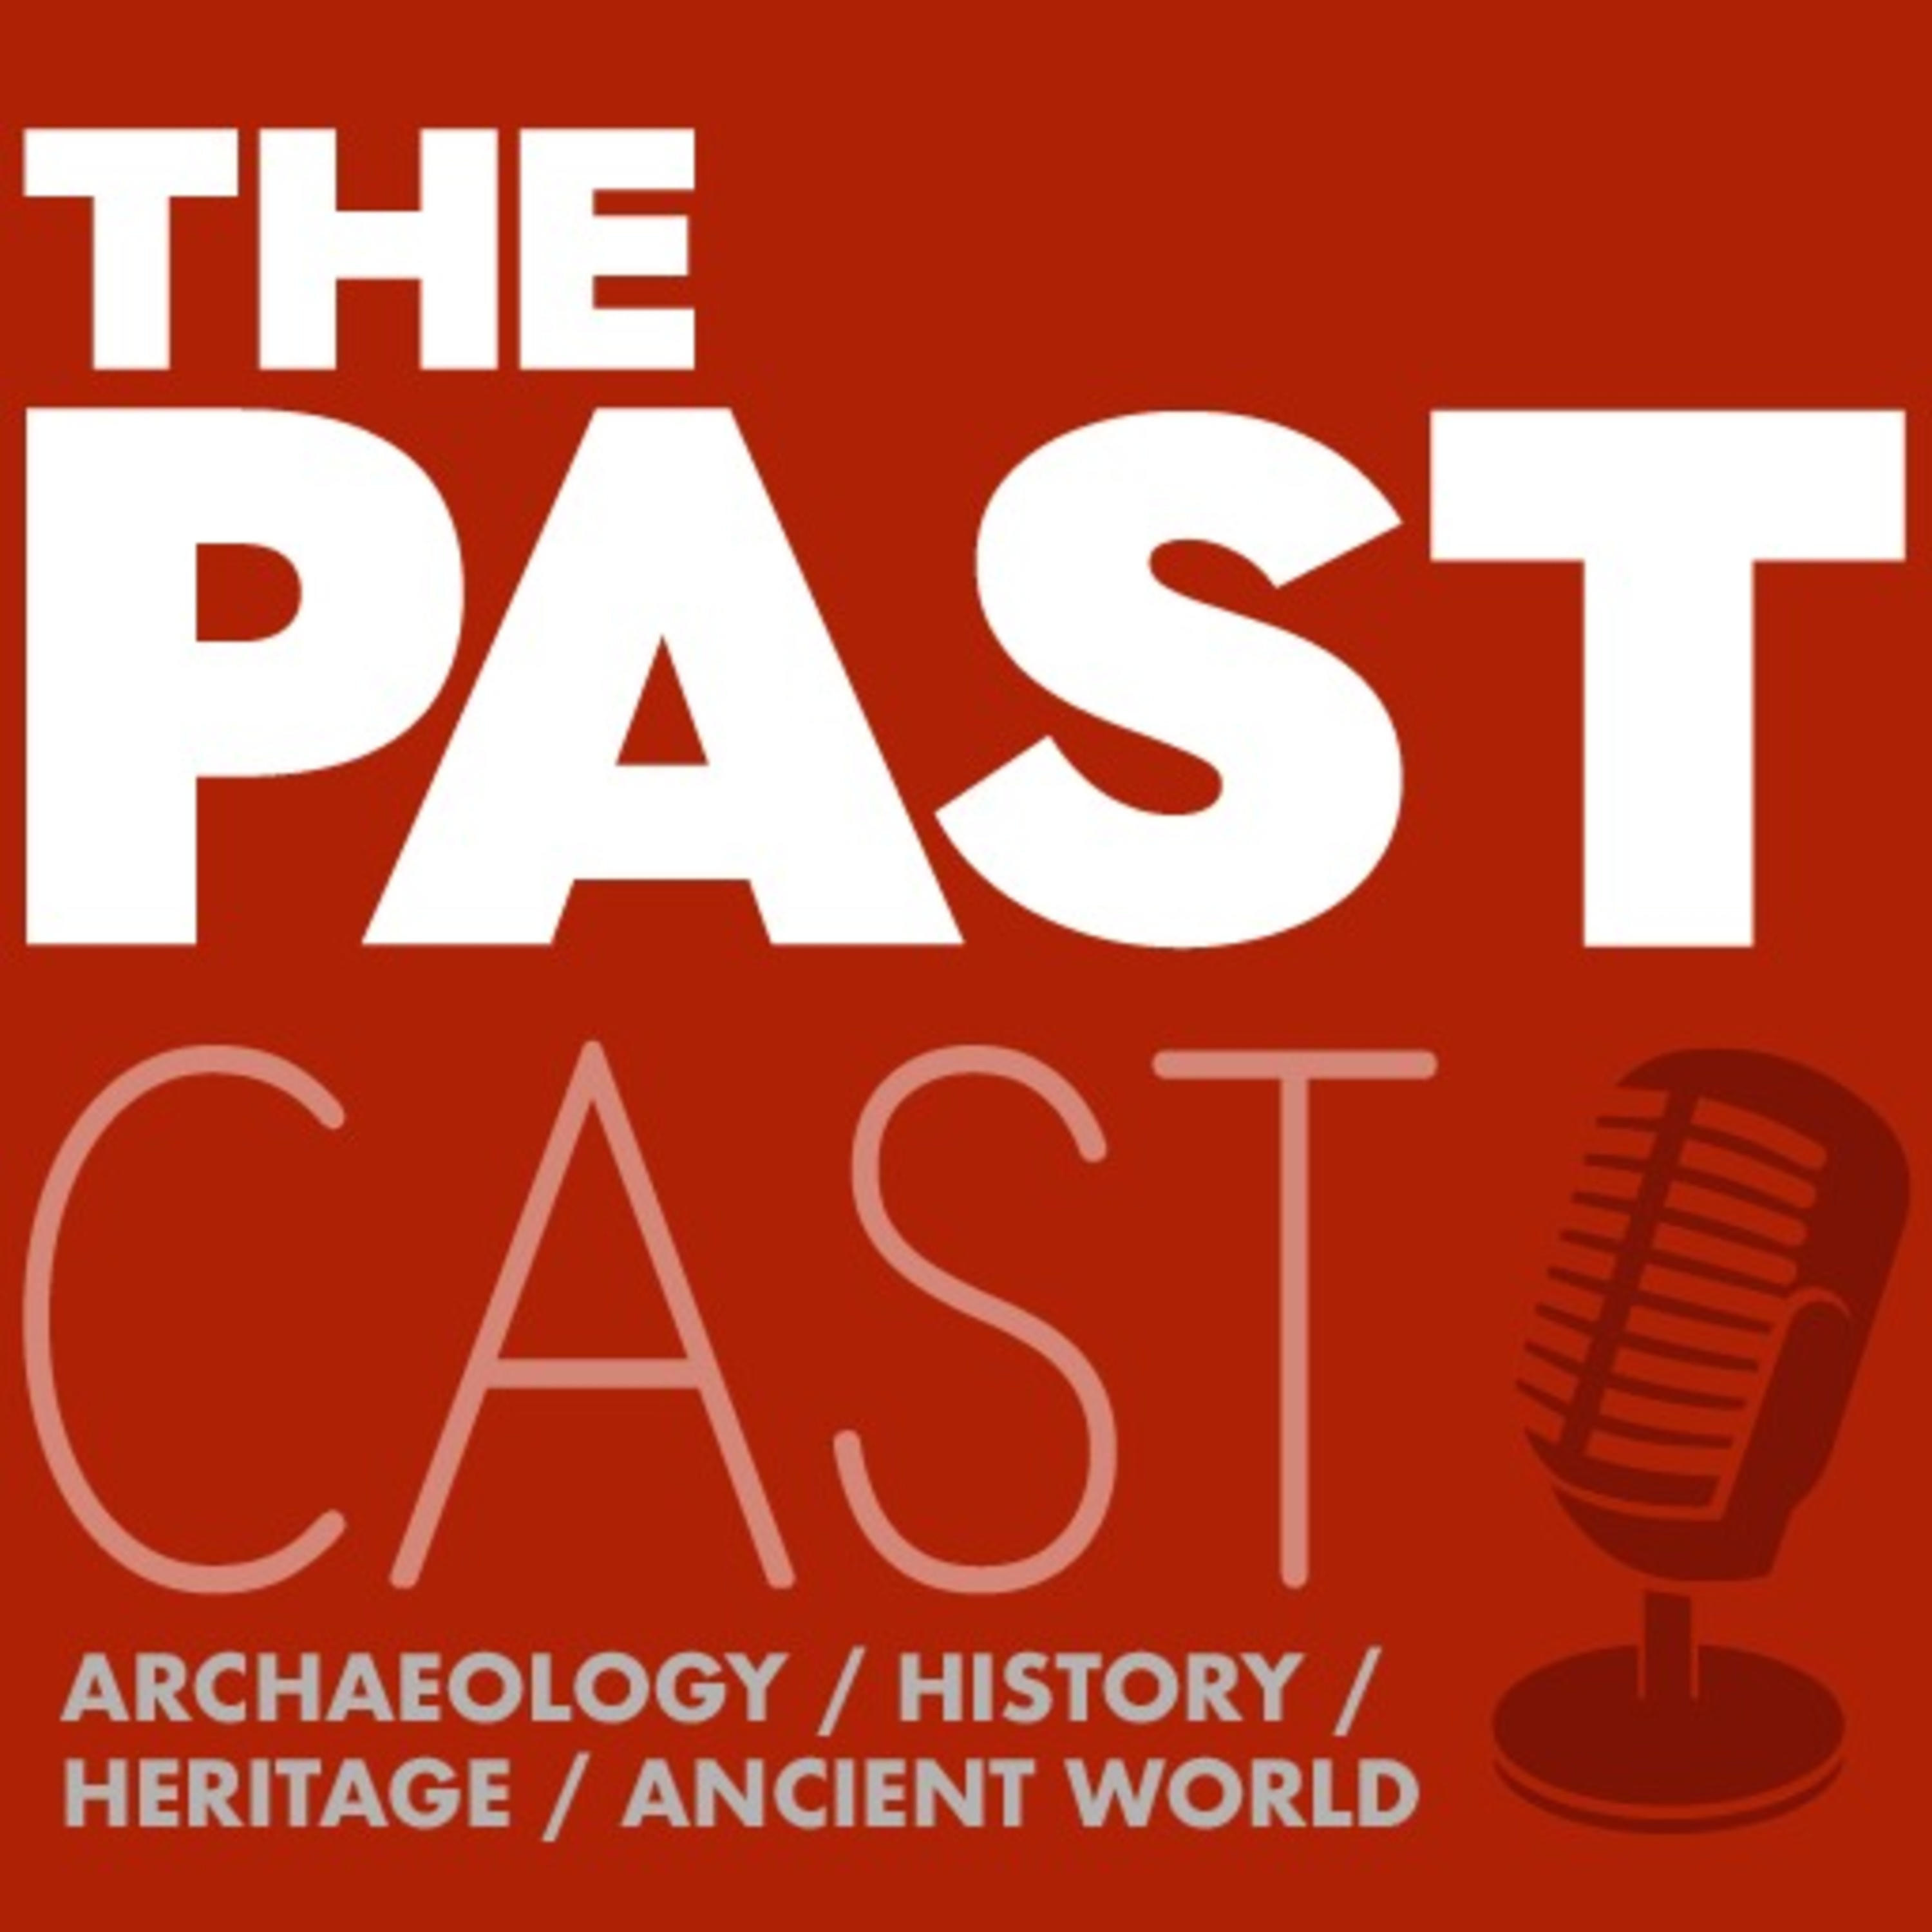 The PastCast